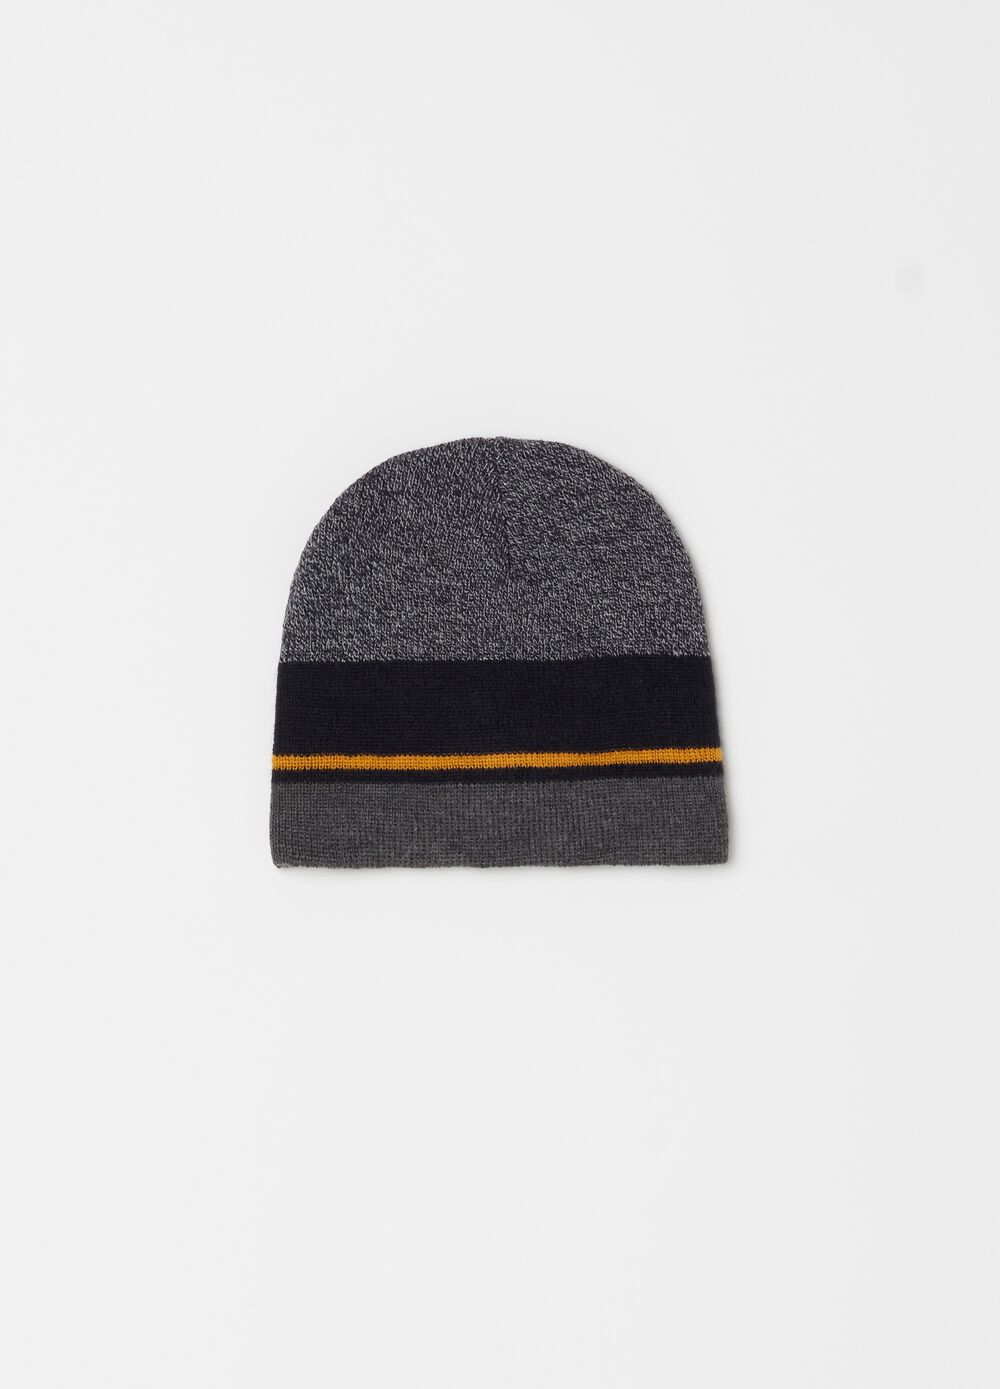 Hat with striped pattern